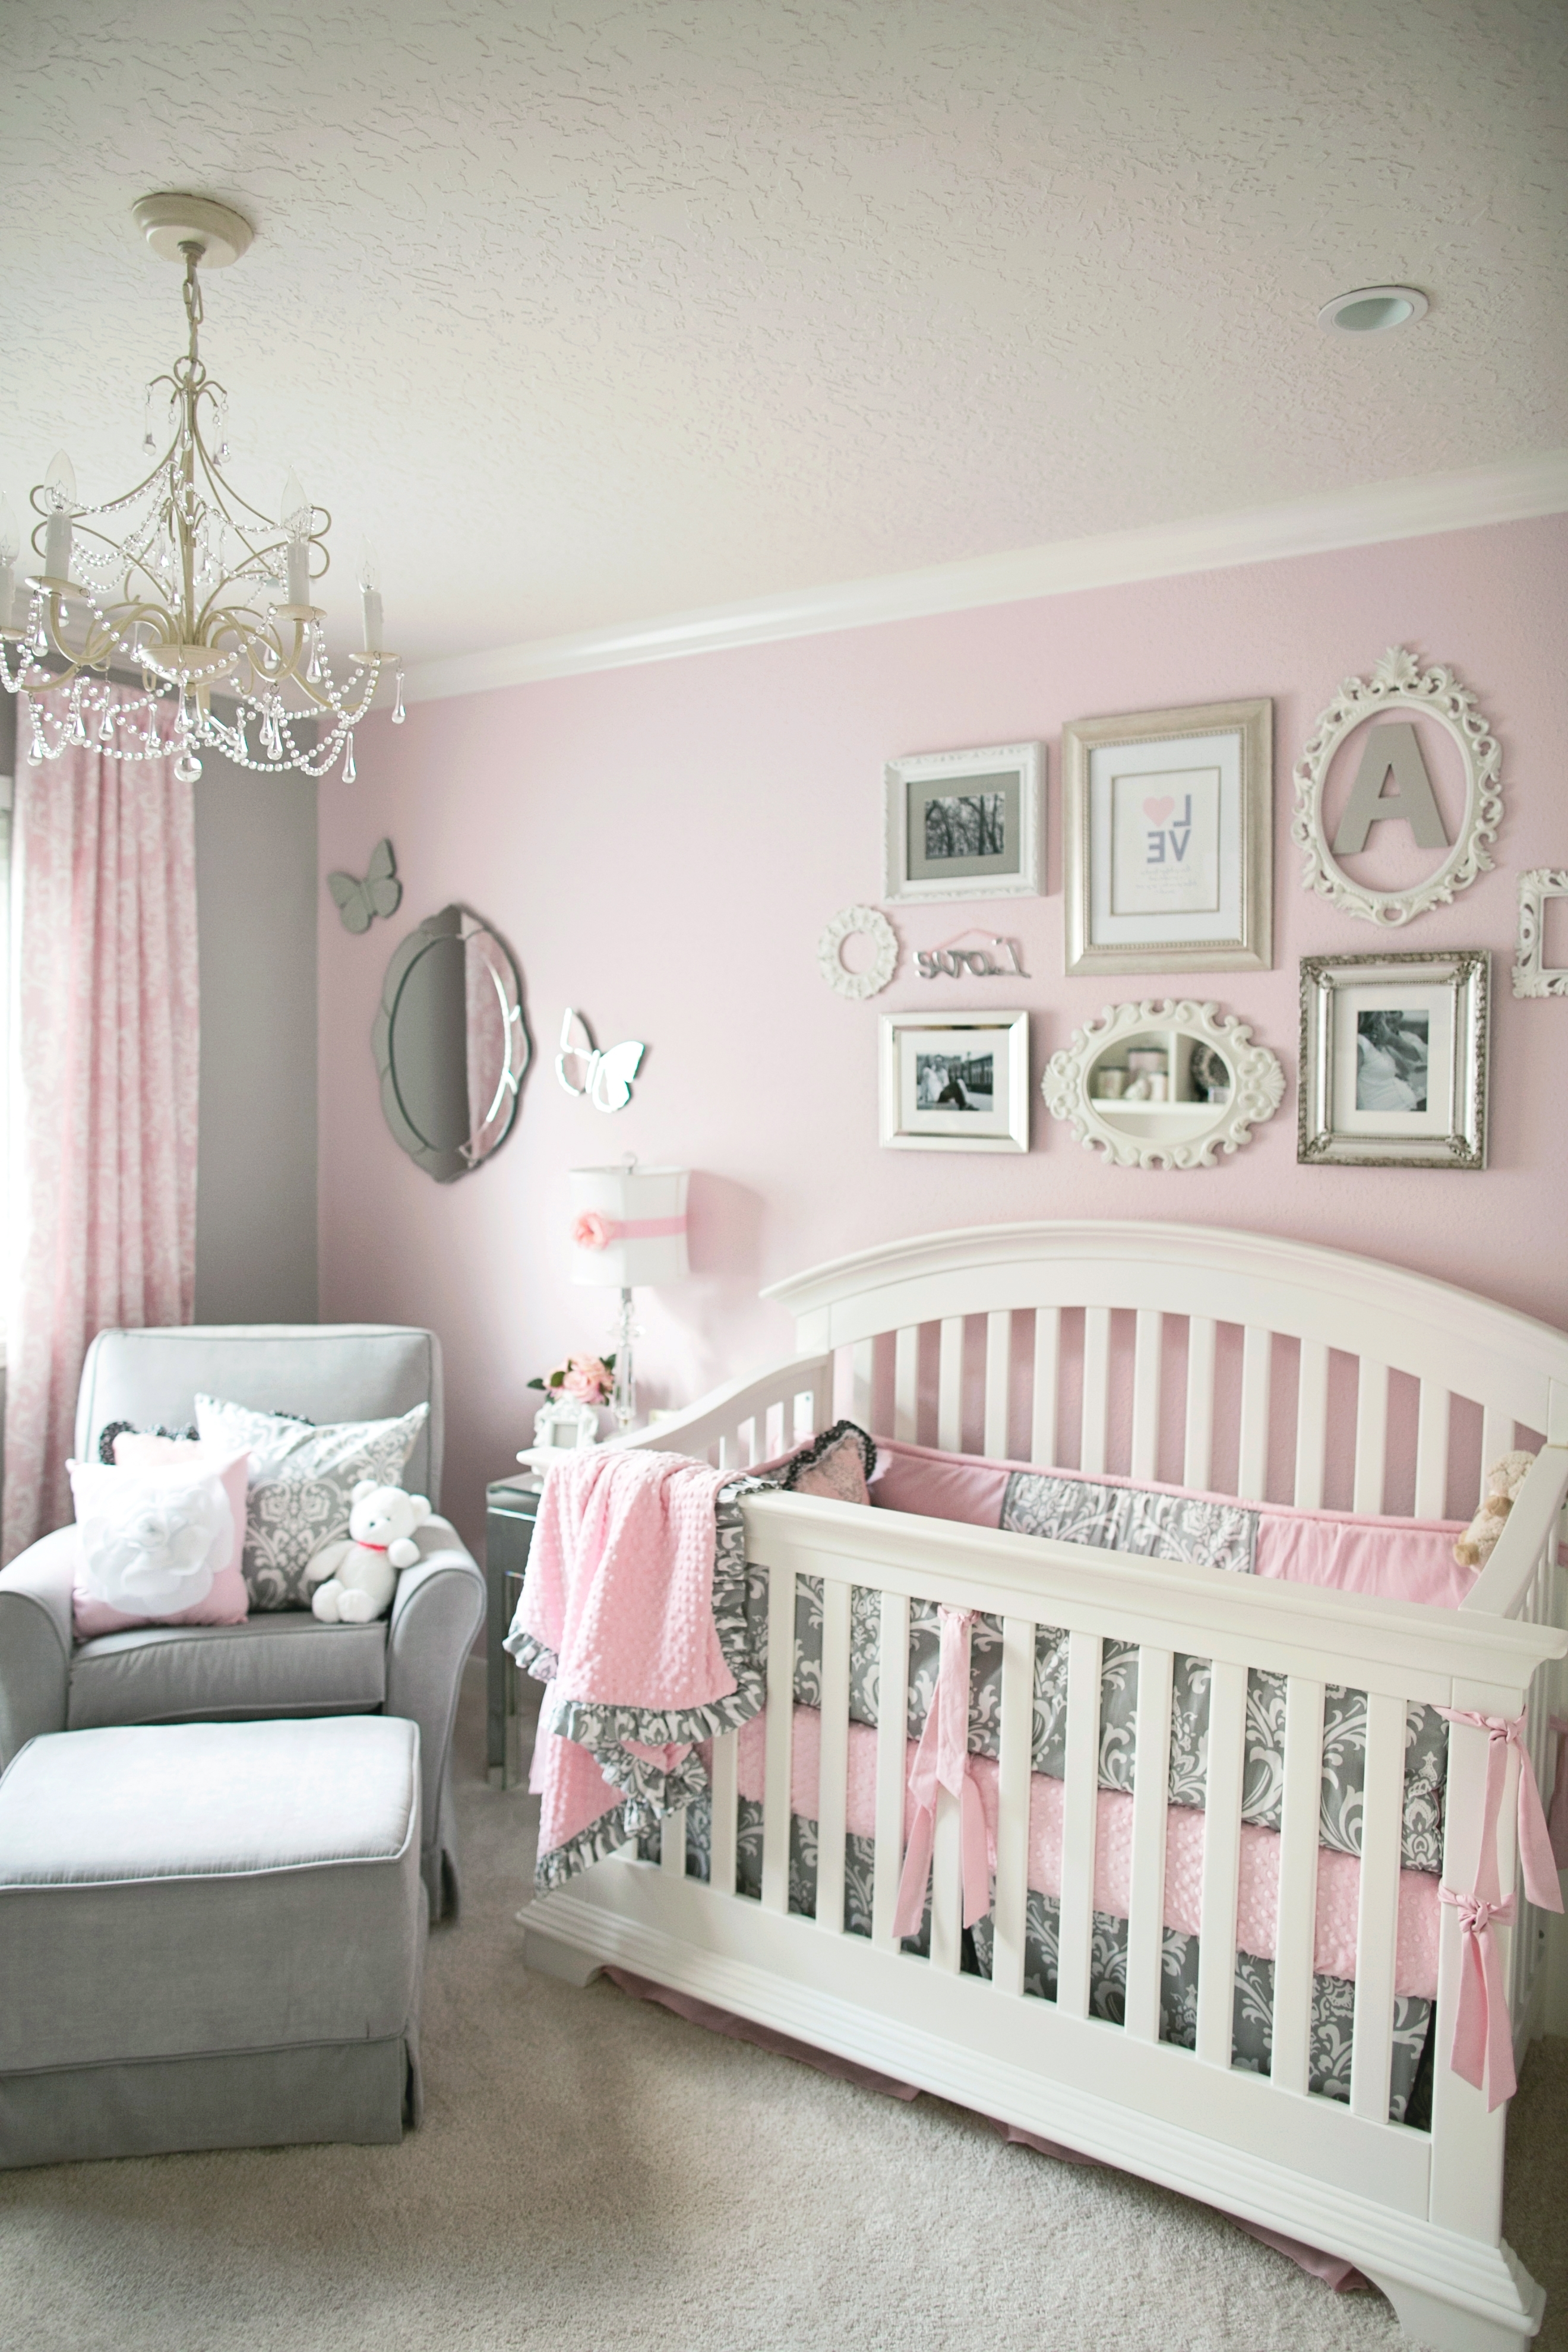 Most Recent Crystal Chandeliers For Baby Girl Room With Regard To Contemporary Baby Girl Room Decor Chevron Pattern Curtain Ideas Full (View 15 of 20)